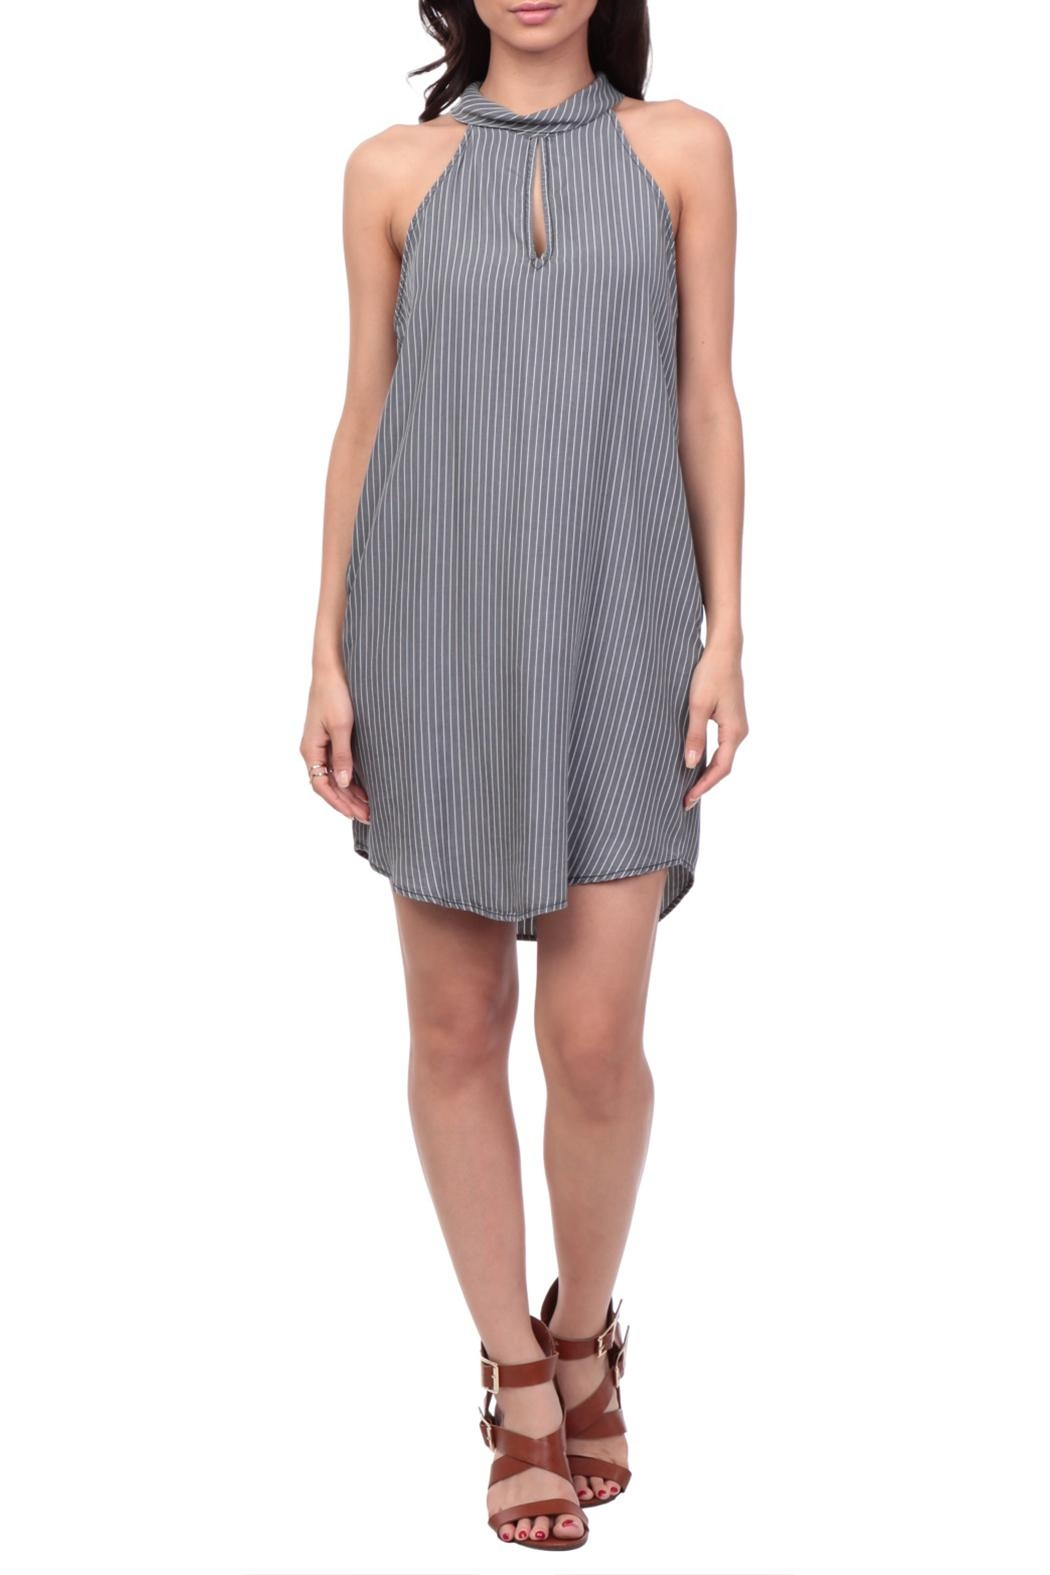 Naked Zebra Striped Keyhole Dress - Main Image